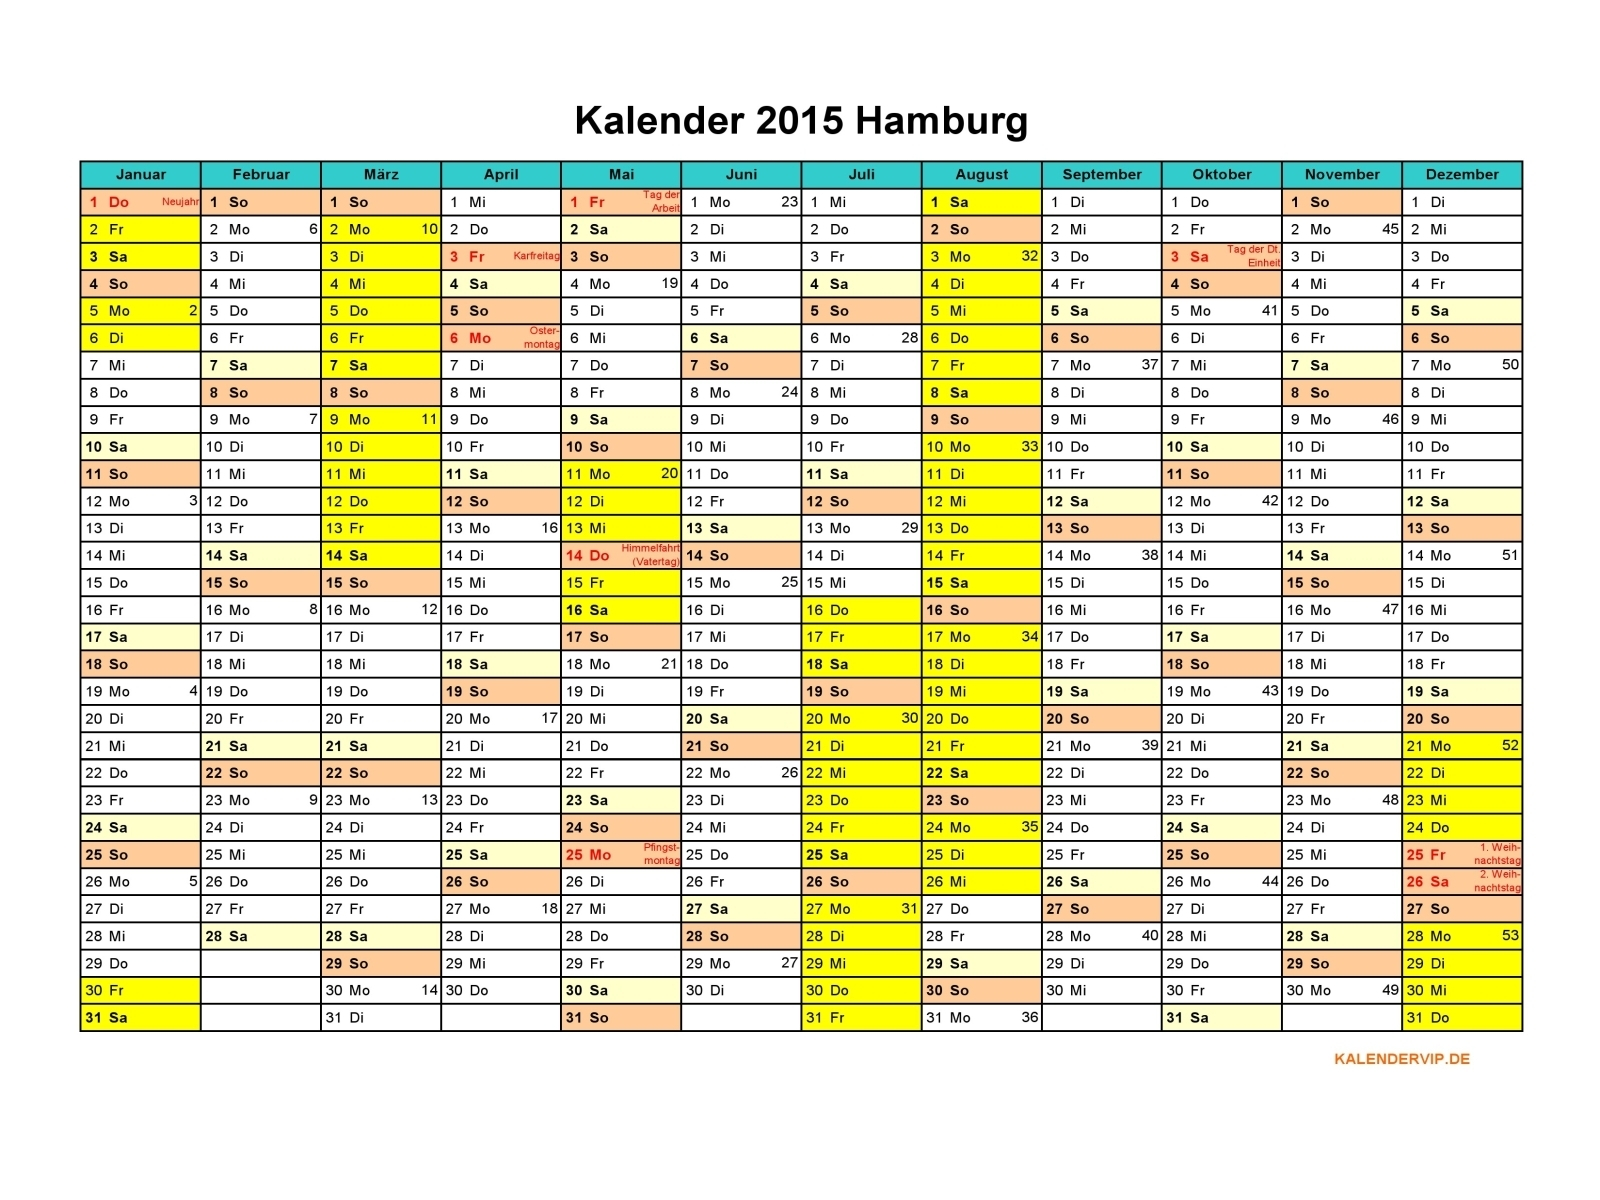 kalender 2015 hamburg kalendervip. Black Bedroom Furniture Sets. Home Design Ideas